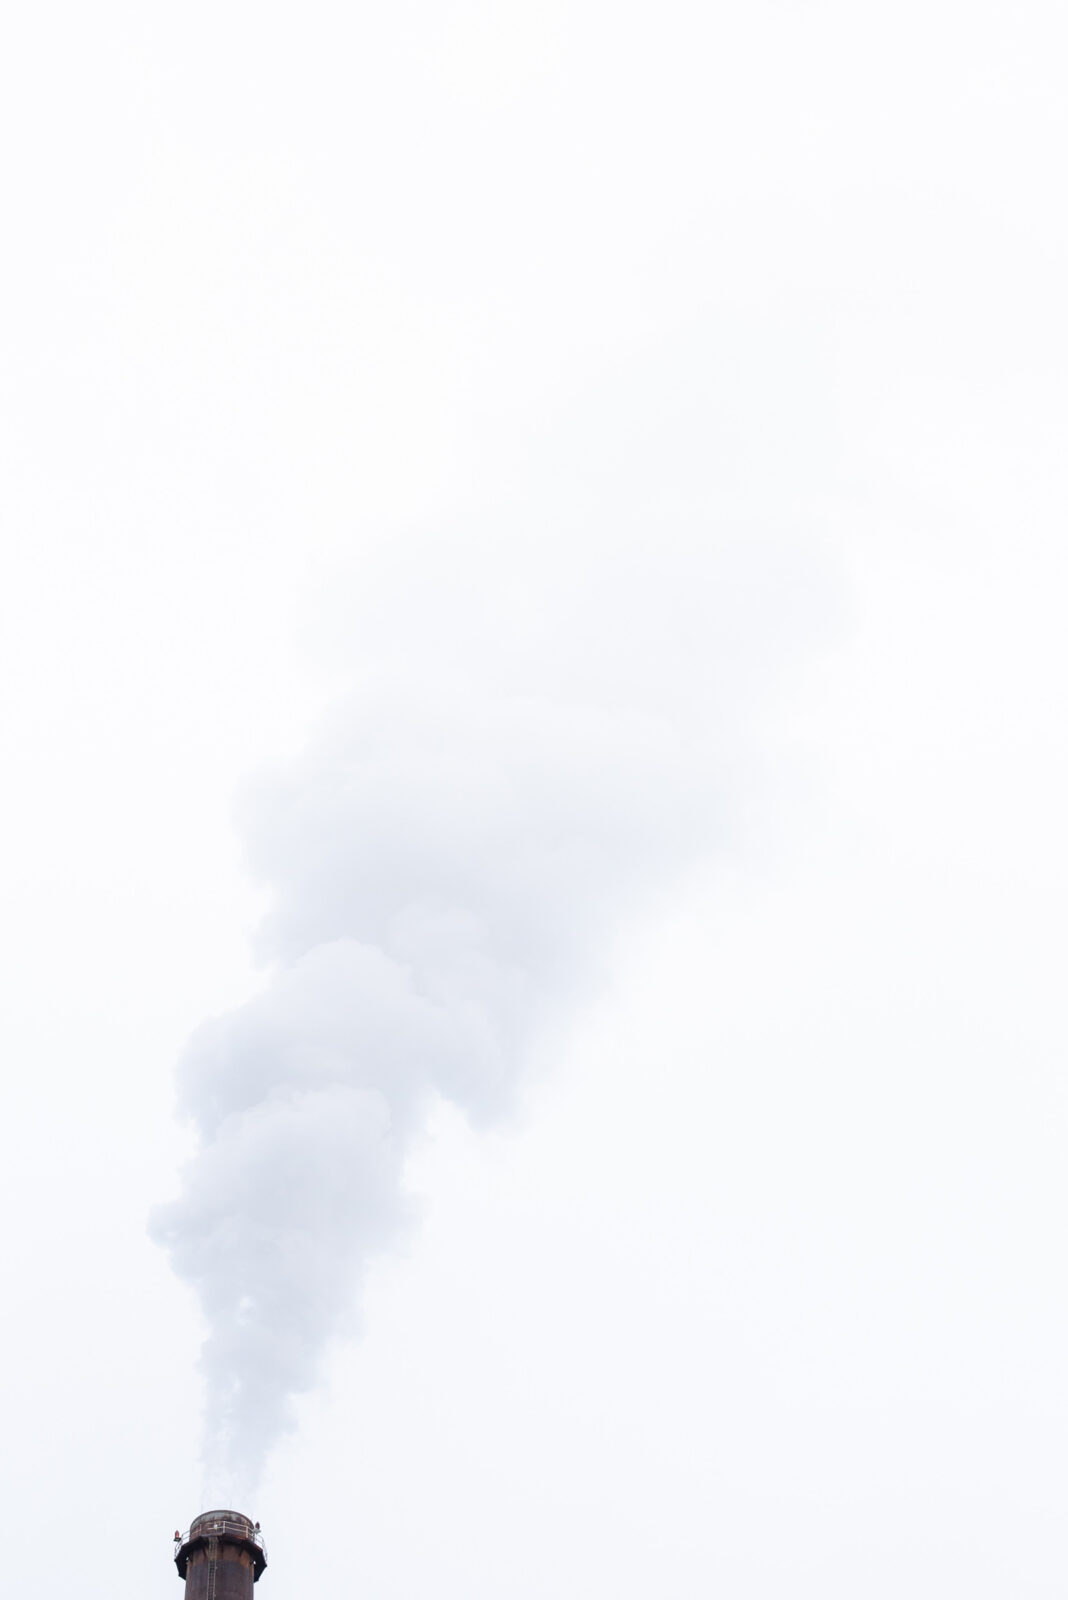 water vapor coming out of a chimney with a white and grey sky in the back